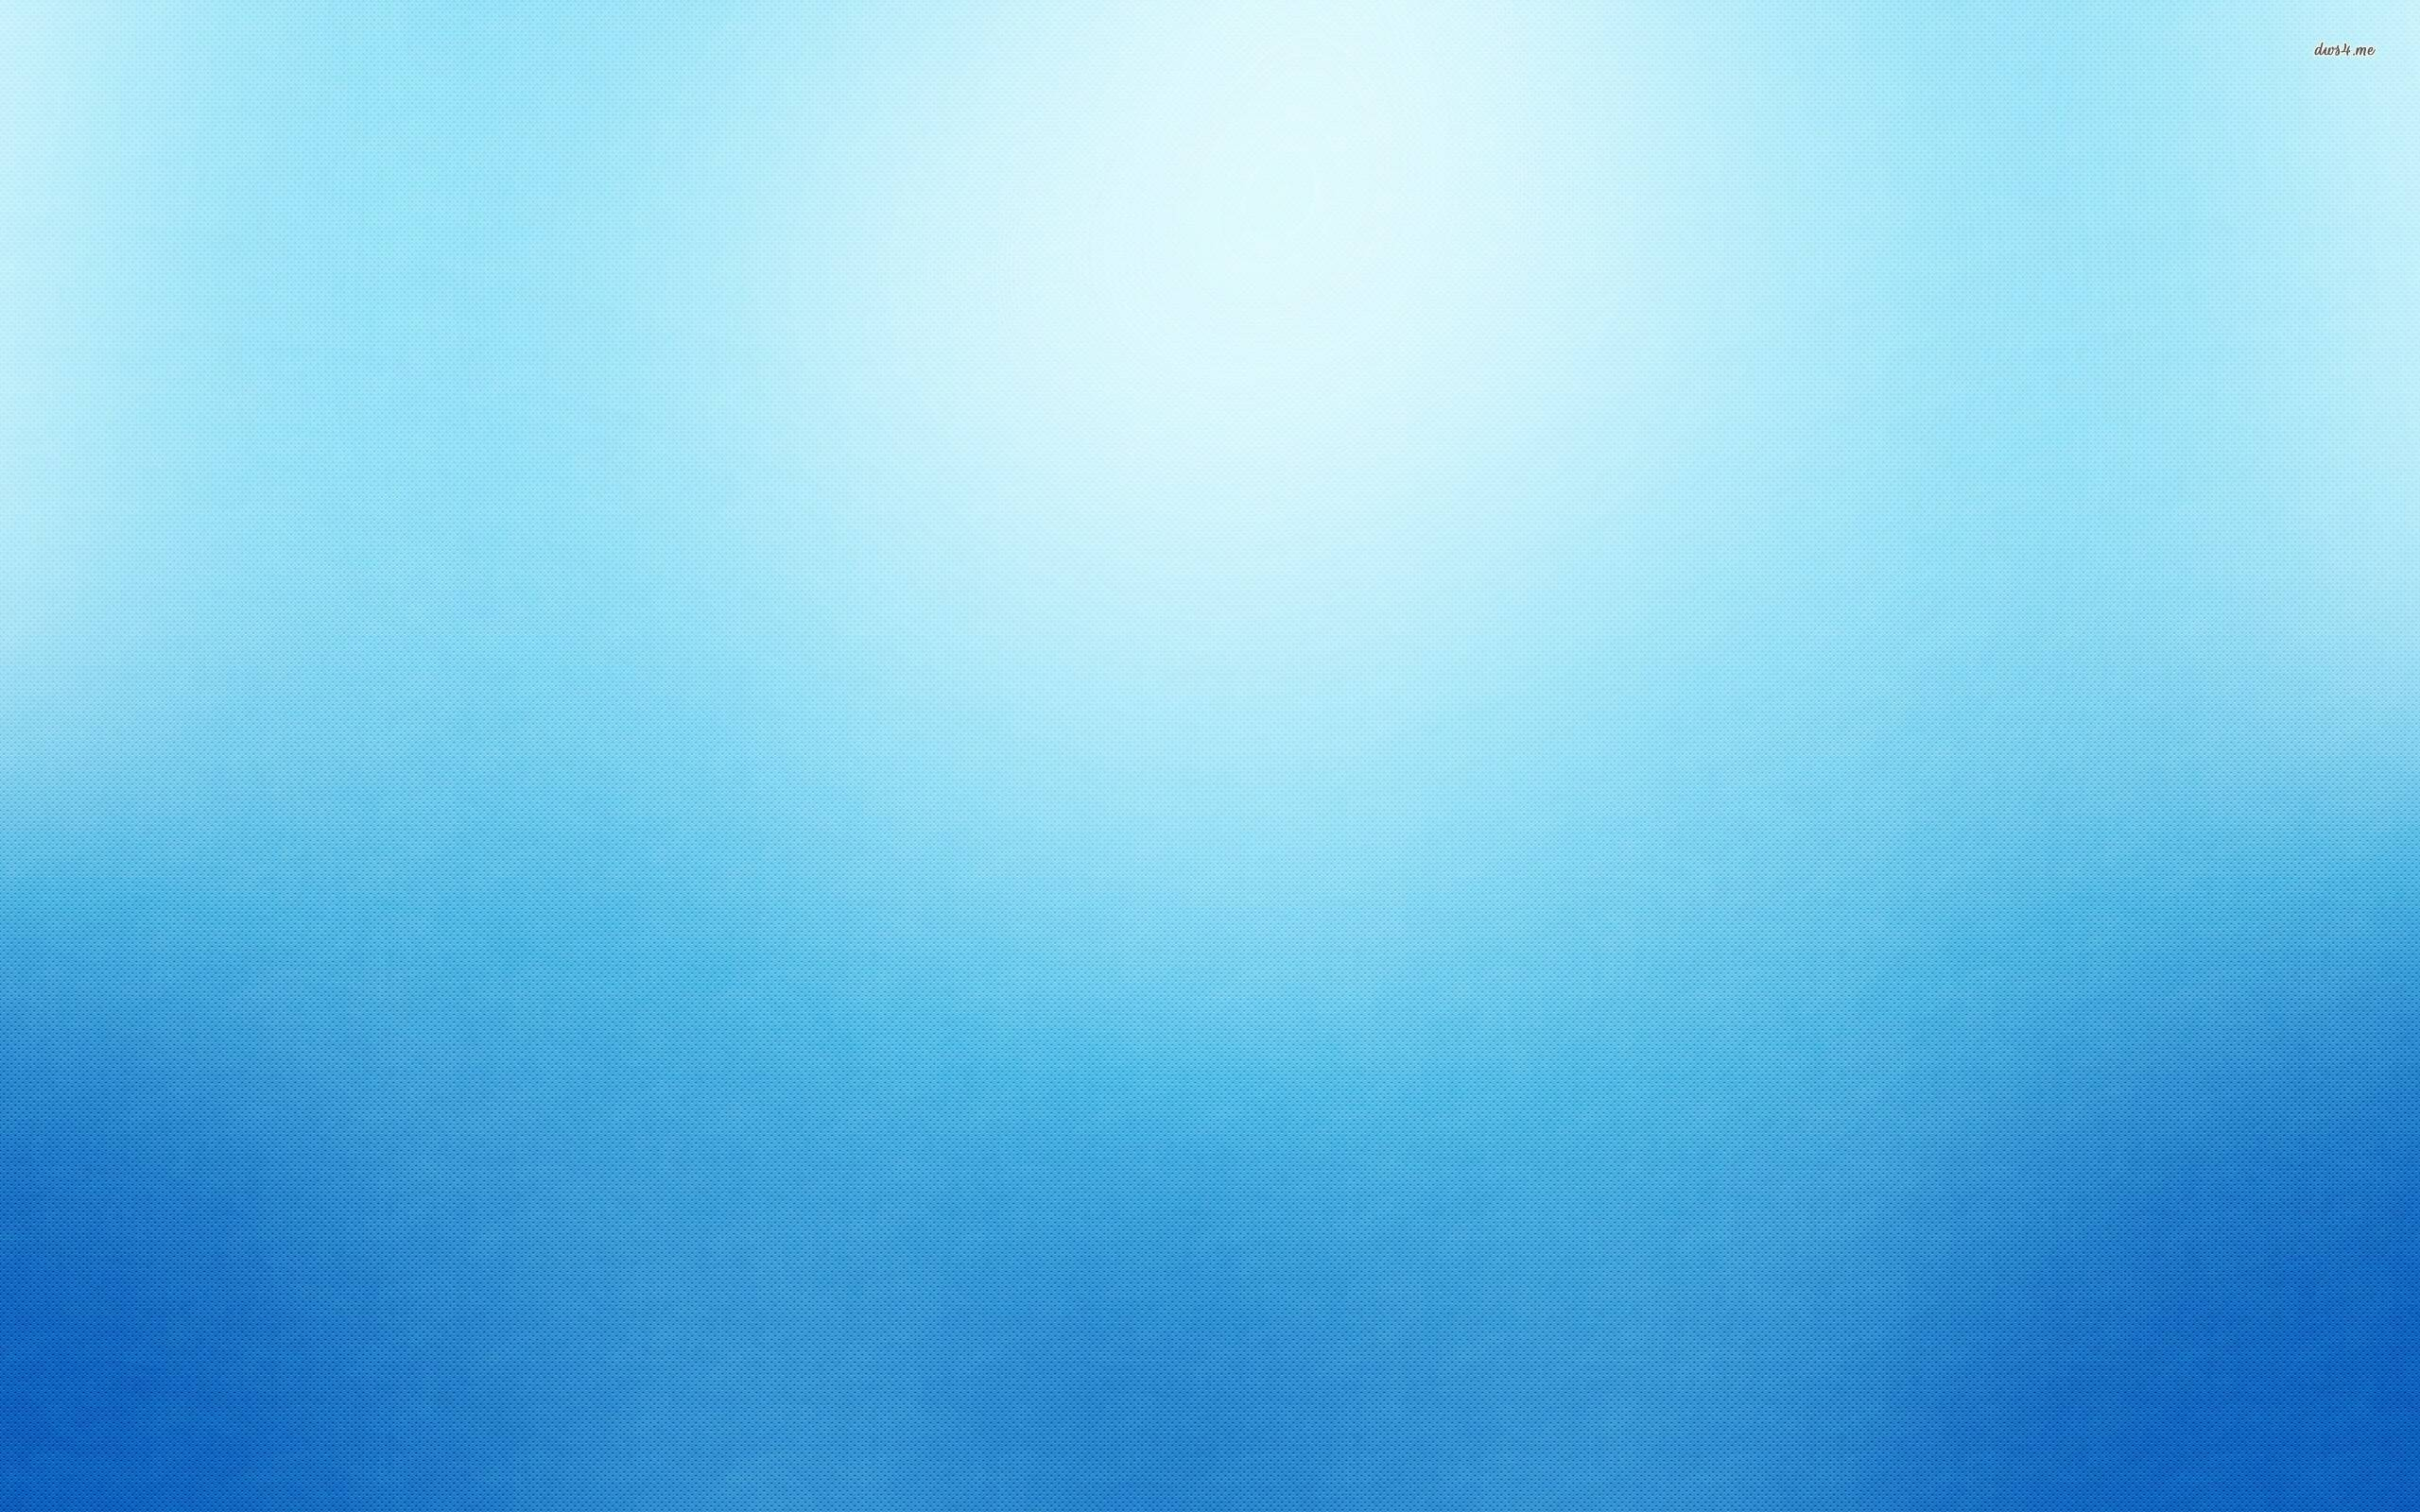 solid light blue wallpaper hd - photo #30